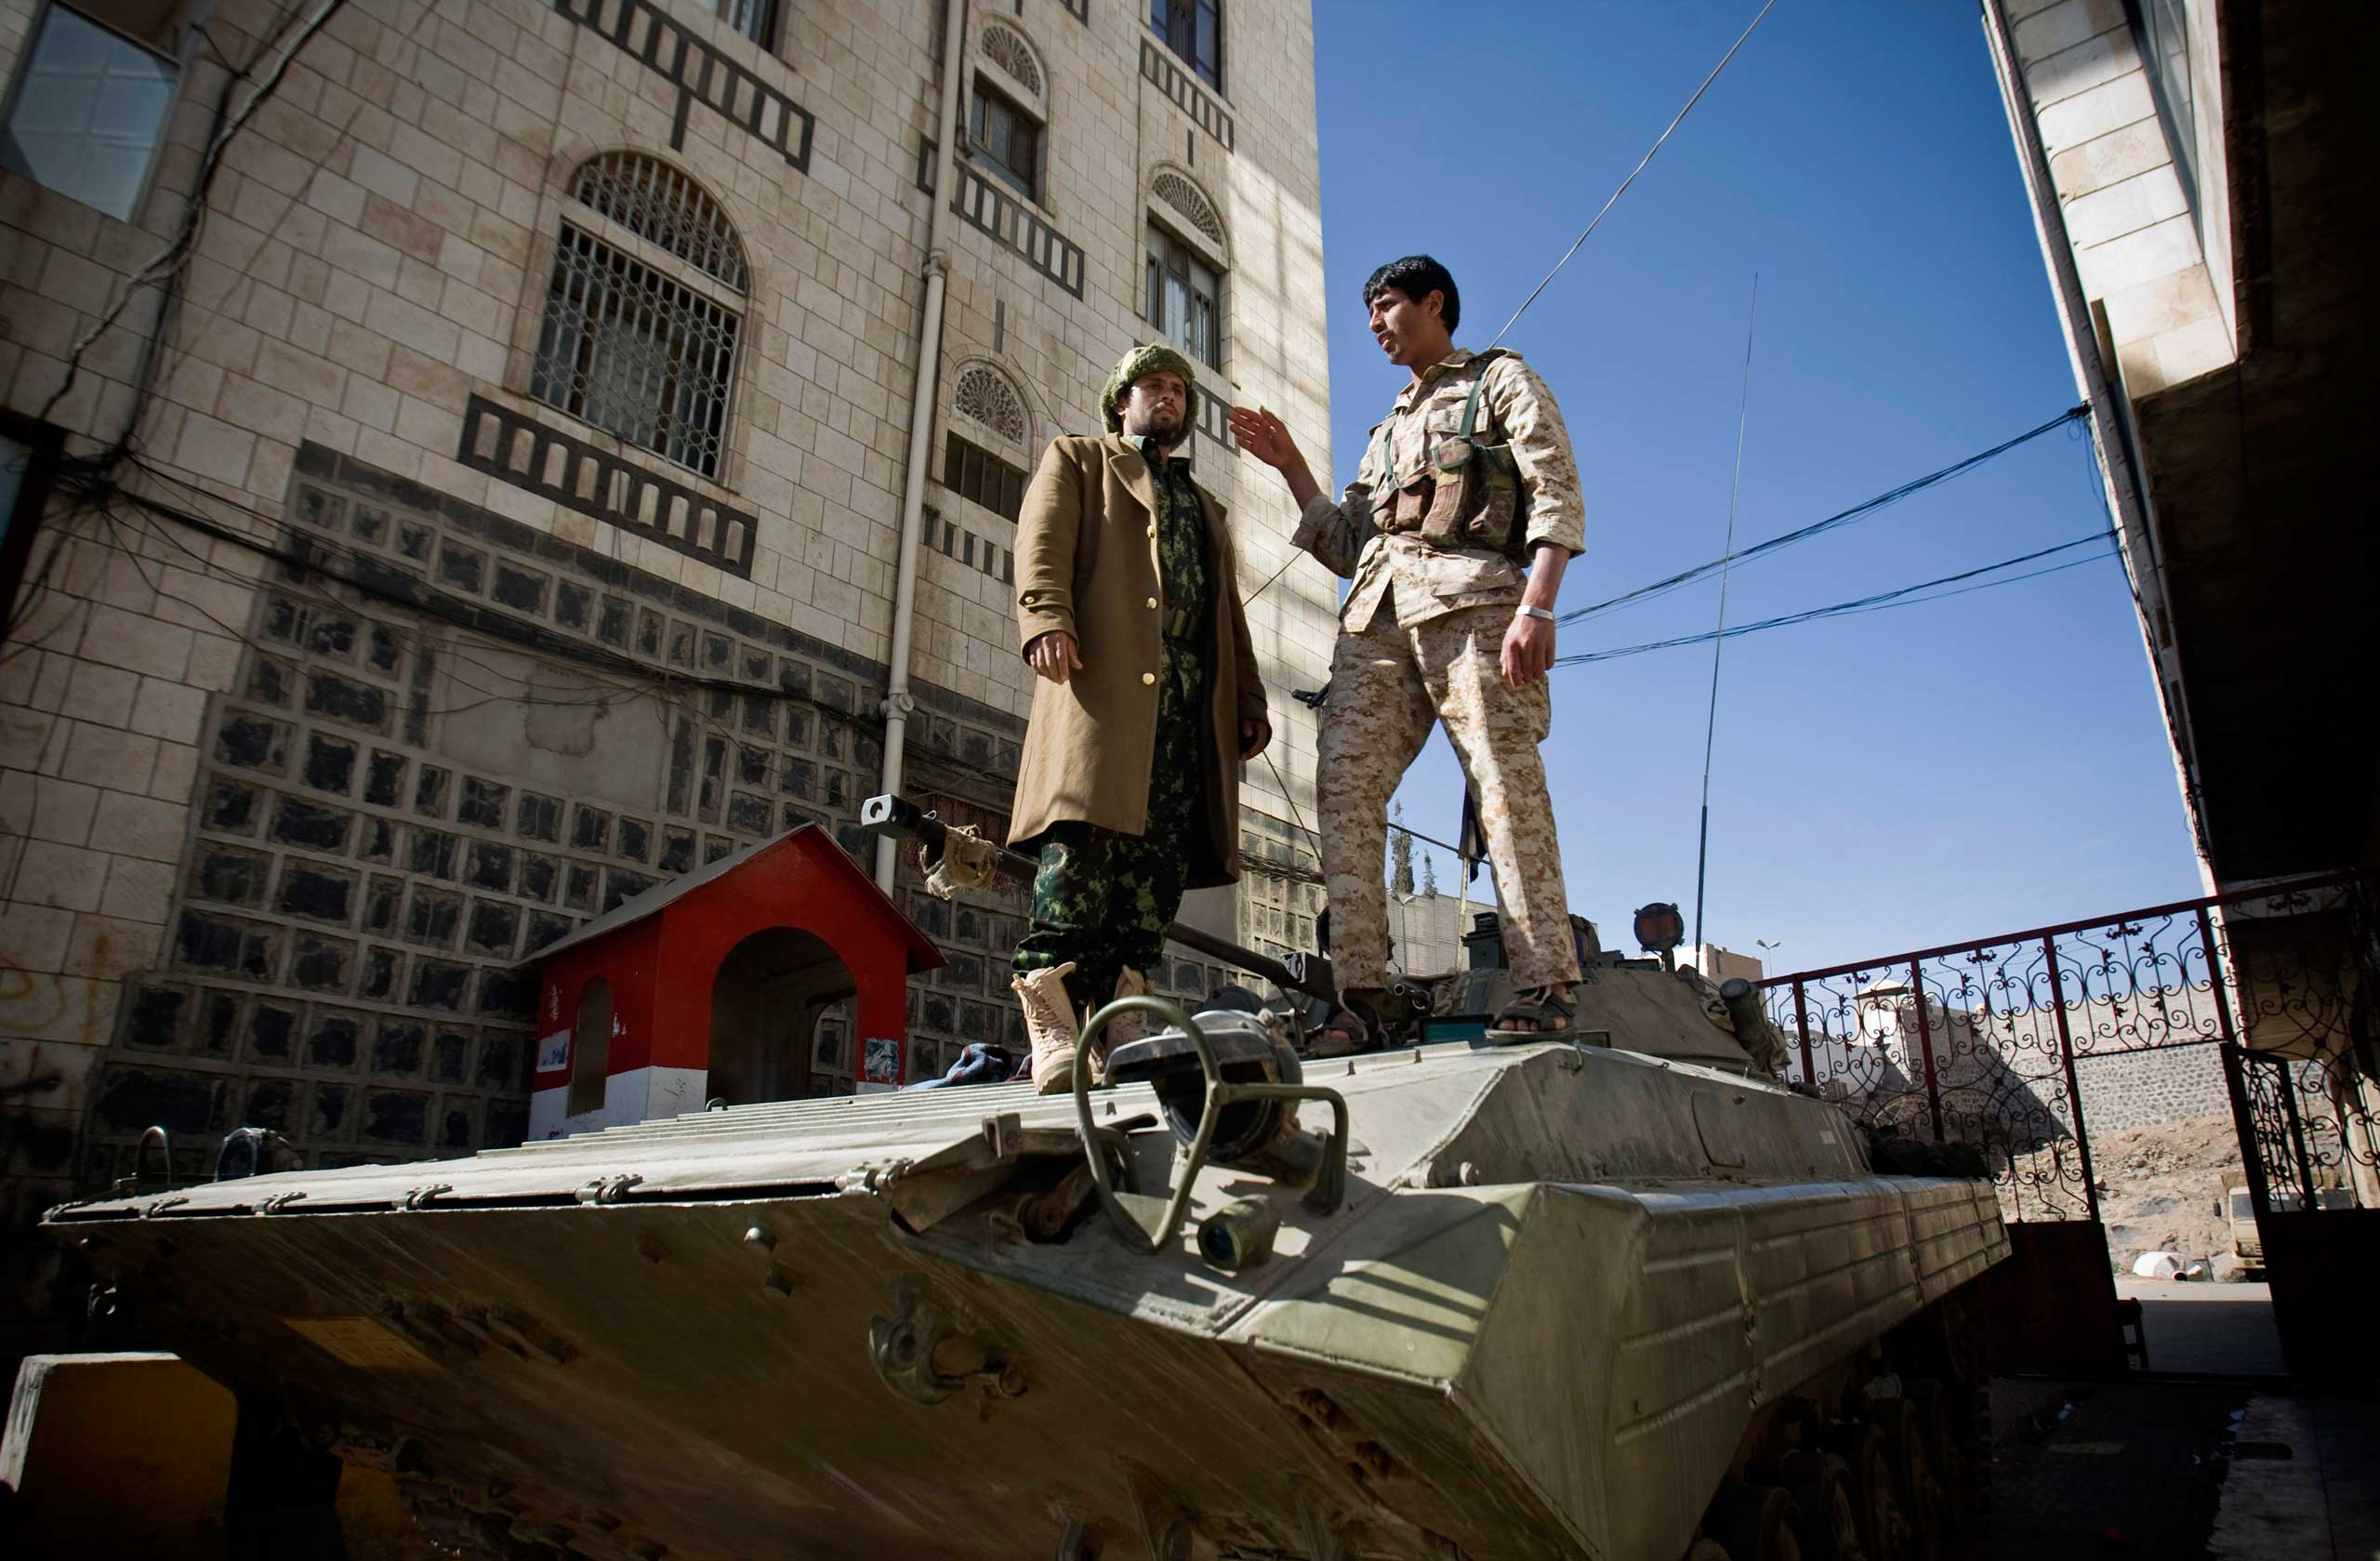 Houthi Shiite Yemeni wearing army uniforms stand atop an armored vehicle, which was seized from the army during recent clashes, outside the house of Yemen's President Abed Rabbo Mansour Hadi in Sanaa, Yemen, Jan. 22, 2015.